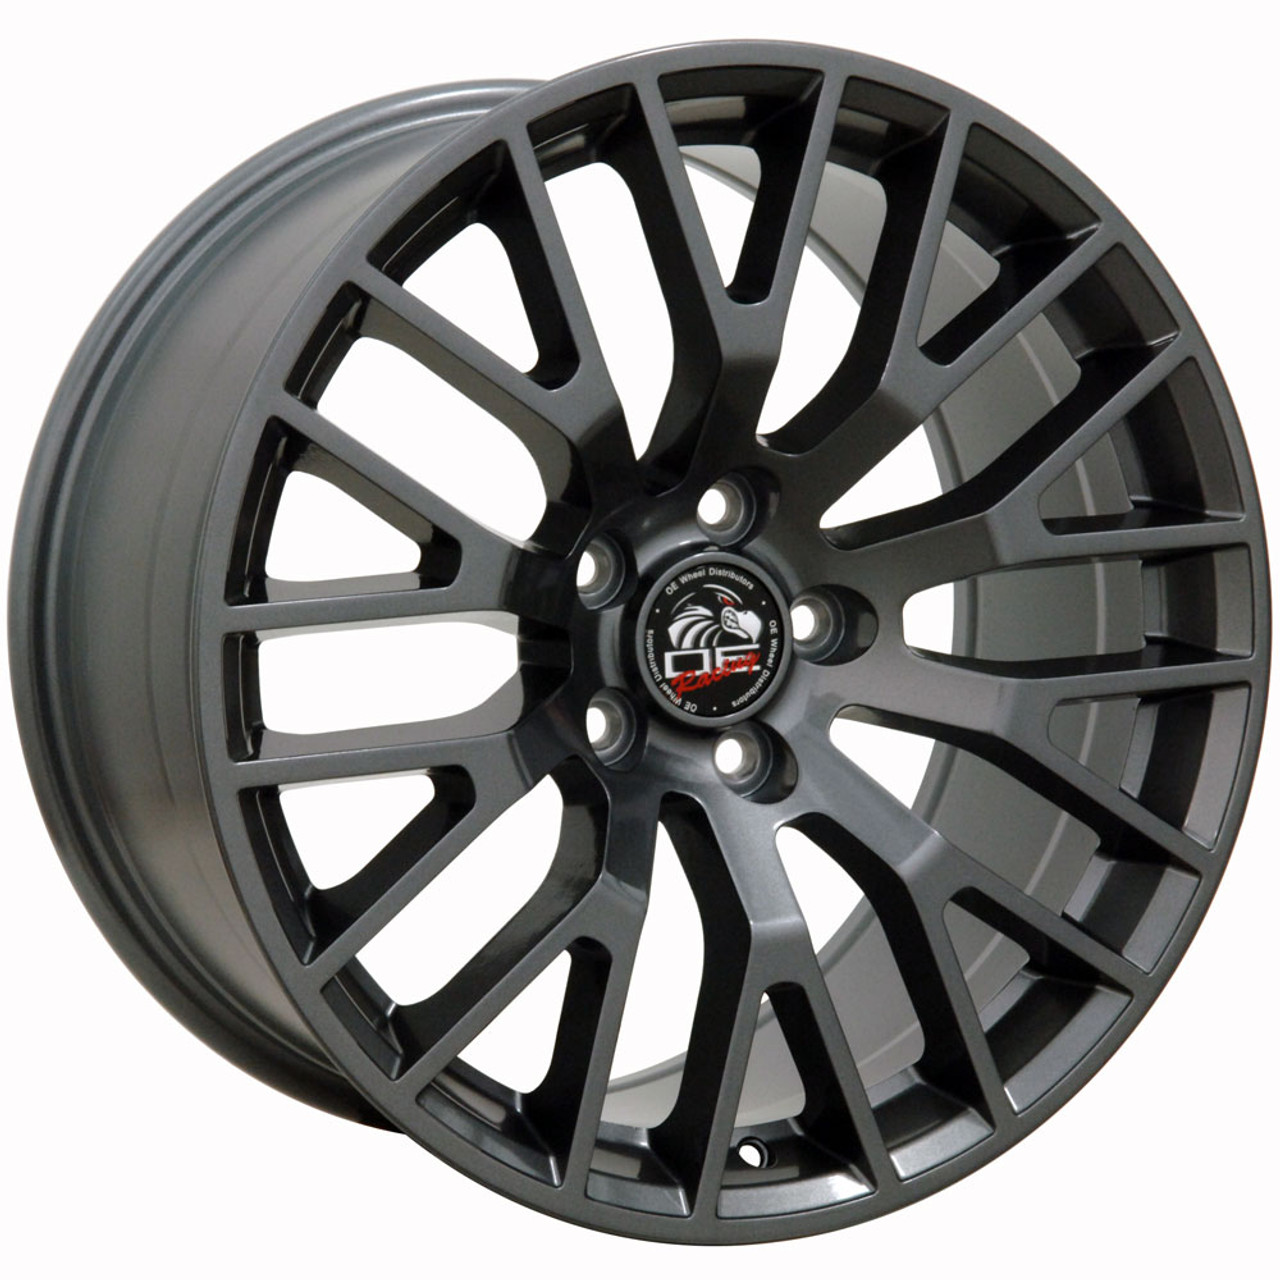 "18"" Fits Ford® -2015 Mustang® GT Wheel Gunmetal 18x10"" Rim"